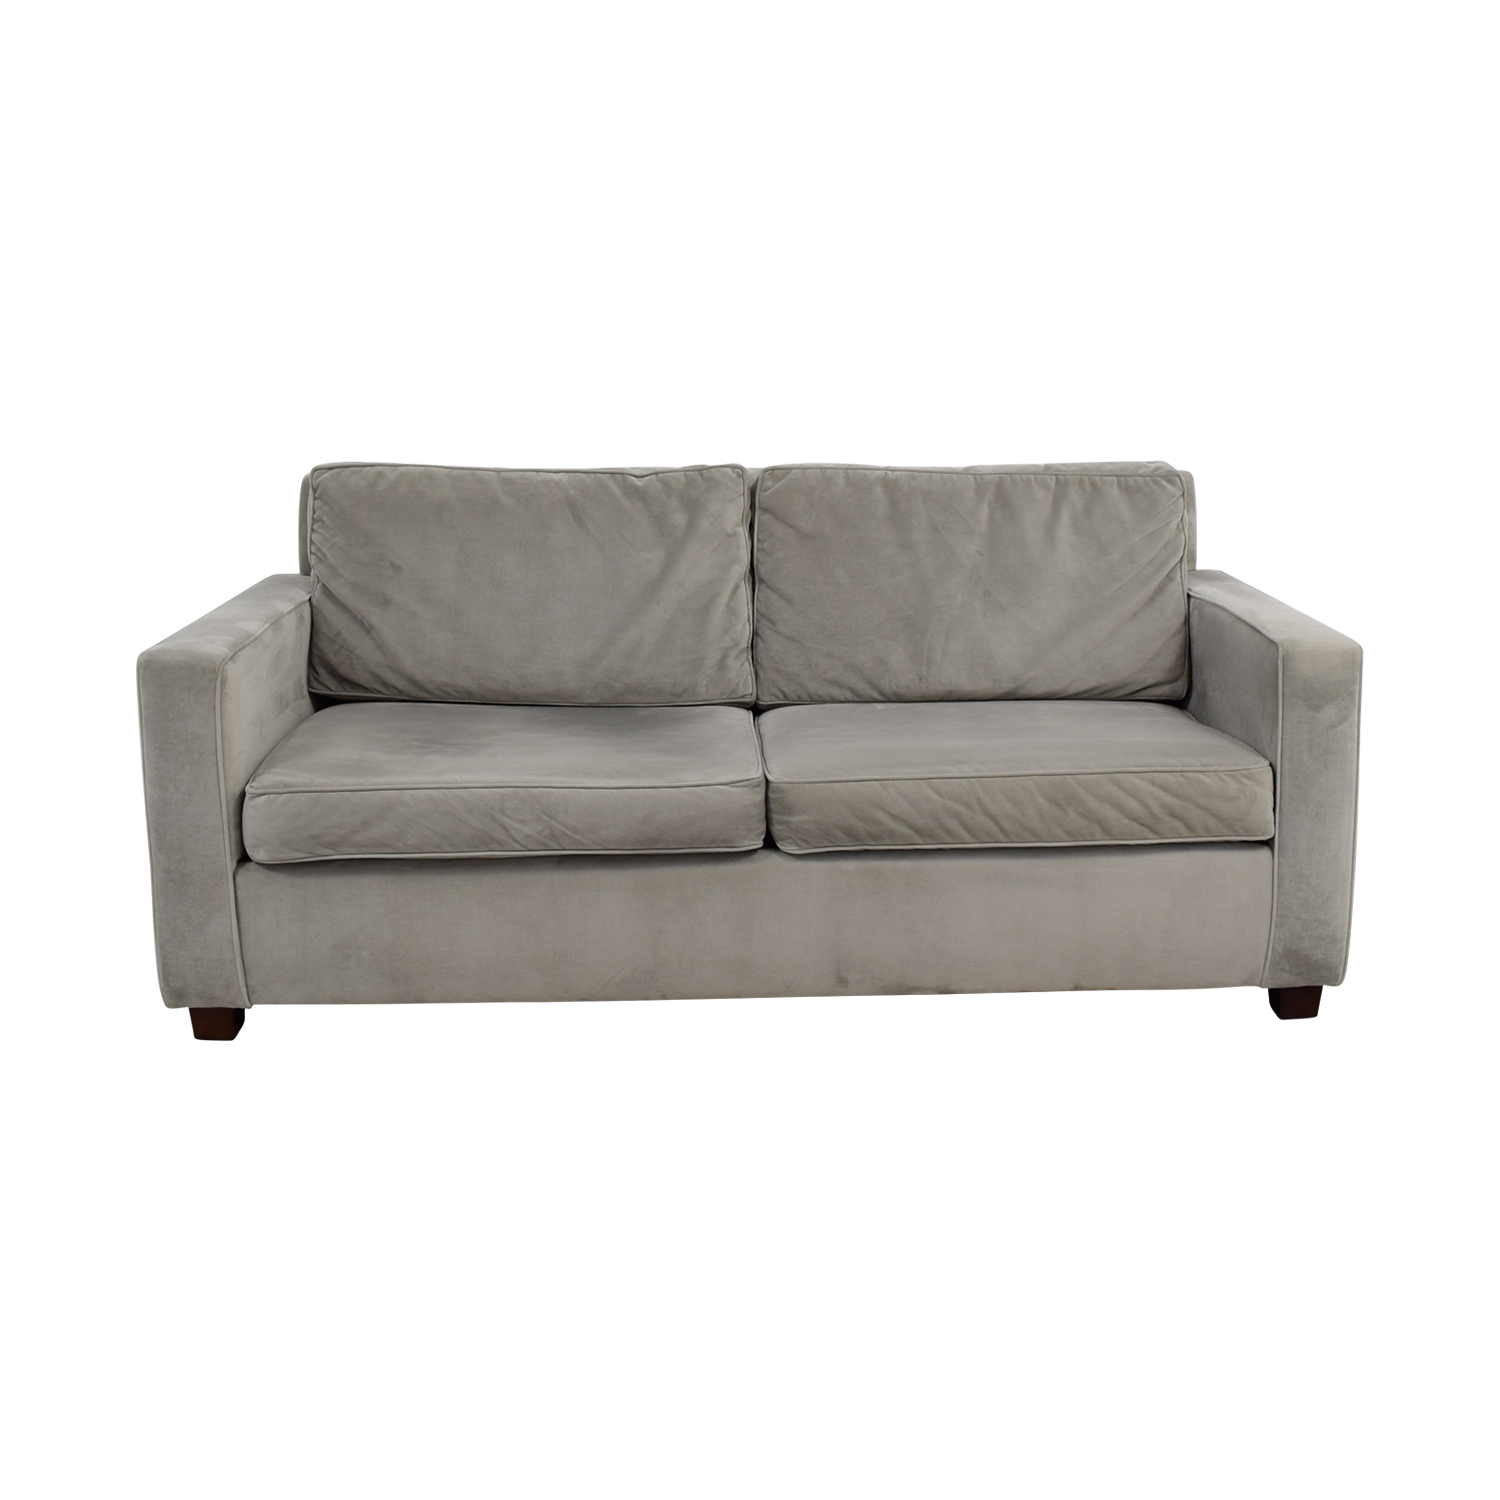 buy West Elm West Elm Grey Henry Two-Cushion Sofa online